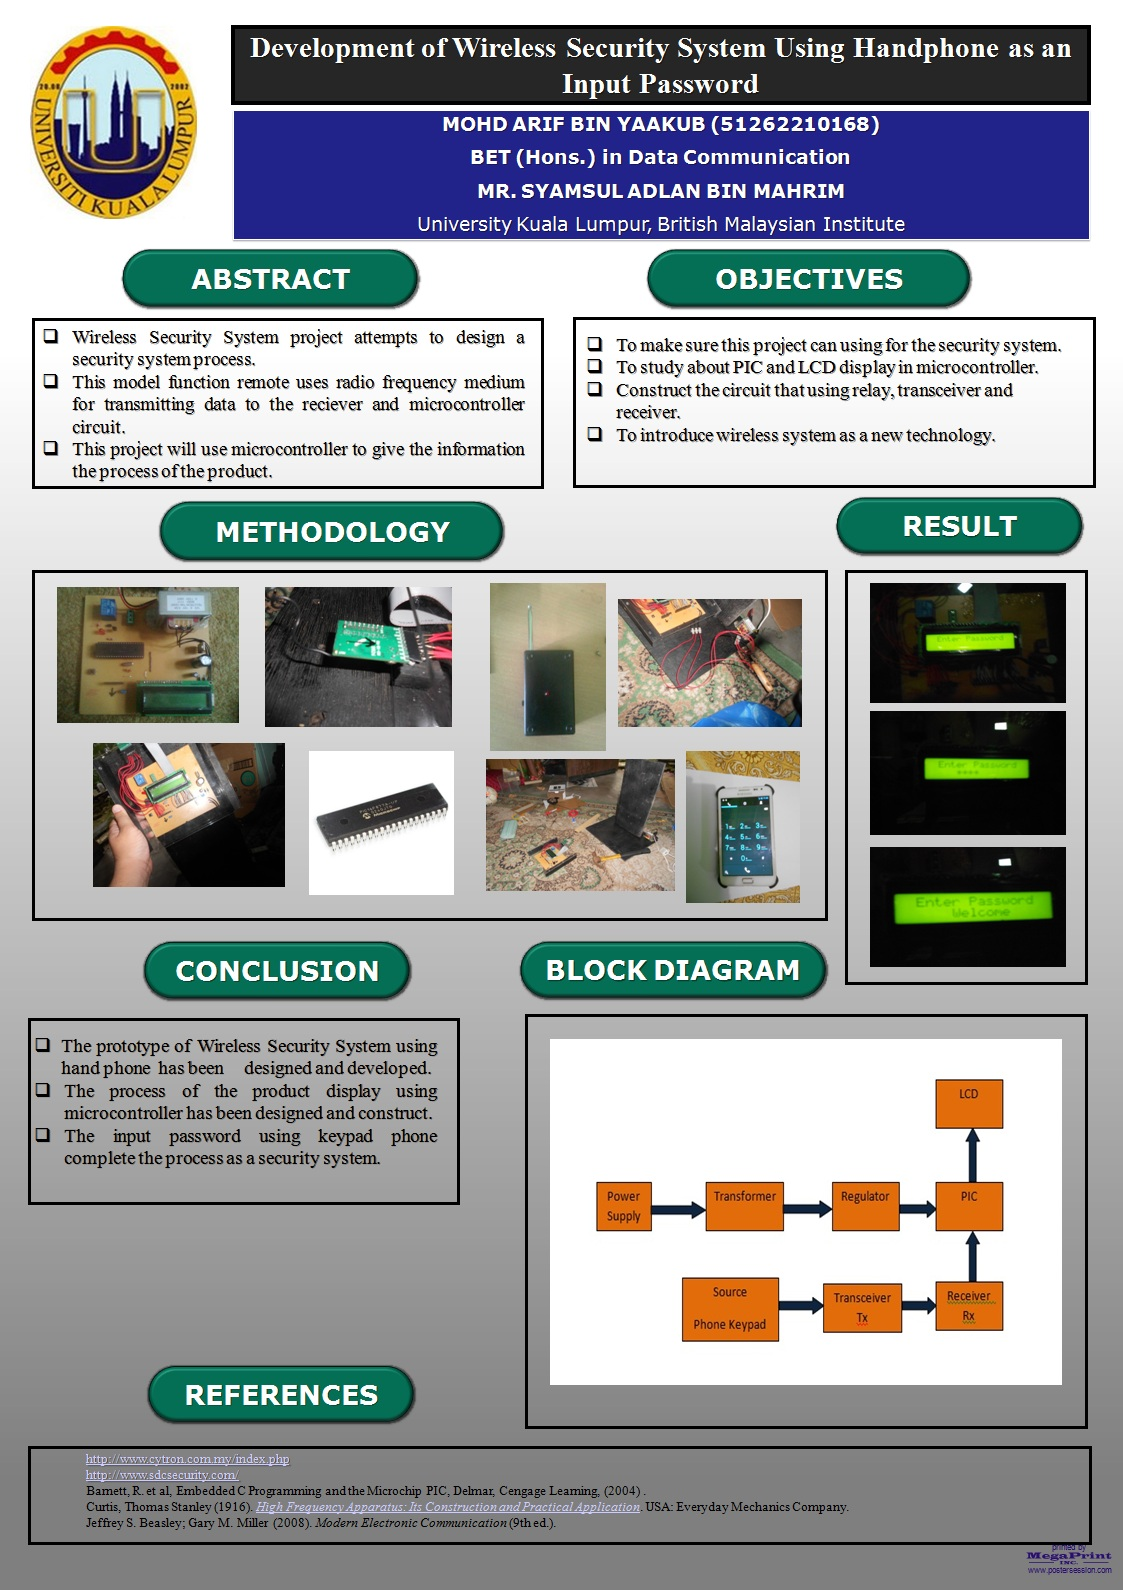 For the presentation day, we should have poster and full complete project.